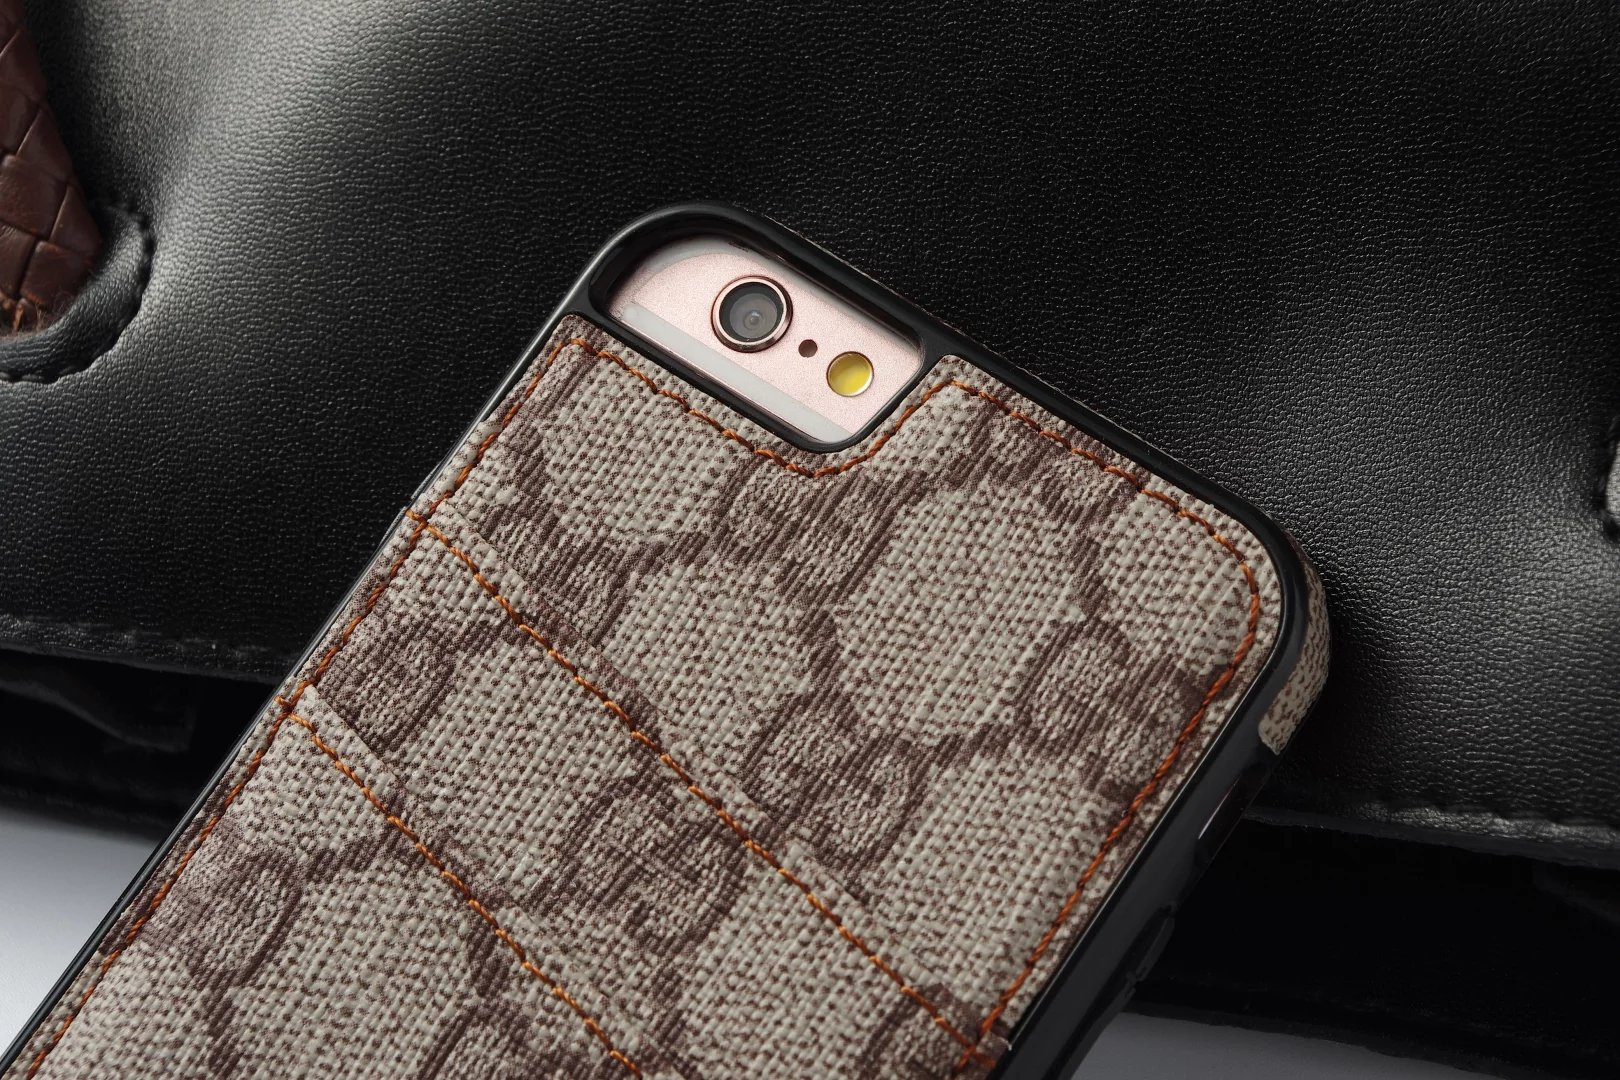 iphone 6 Plus leather cover create iphone 6 Plus case fashion iphone6 plus case iphone 6 with case phone cases for 6 design a cell phone case phone case customize where to find iphone cases best designer phone cases